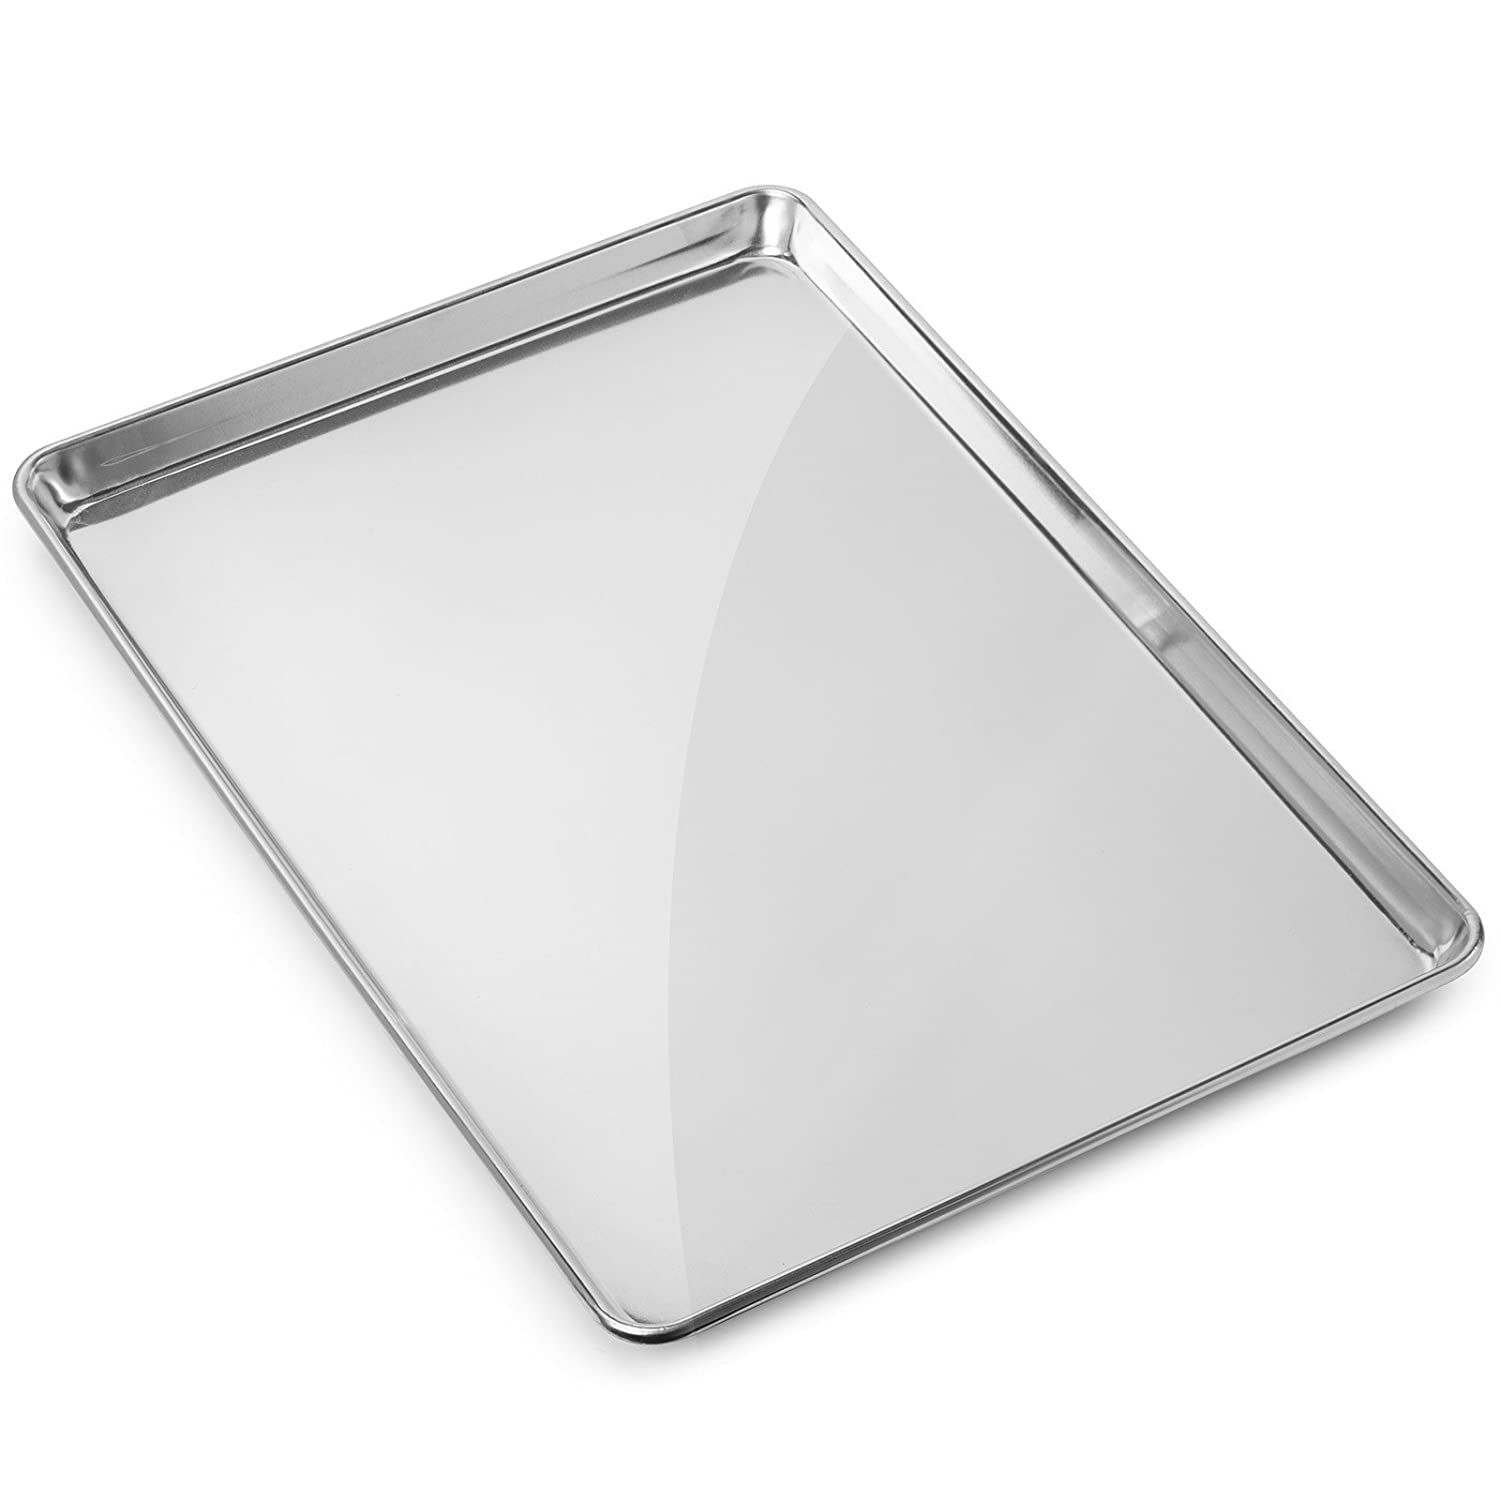 Gridmann 9 x 13 Commercial Grade Aluminium Cookie Sheet Baking Tray Jelly Roll Pan Quarter Sheet - 1 Pan